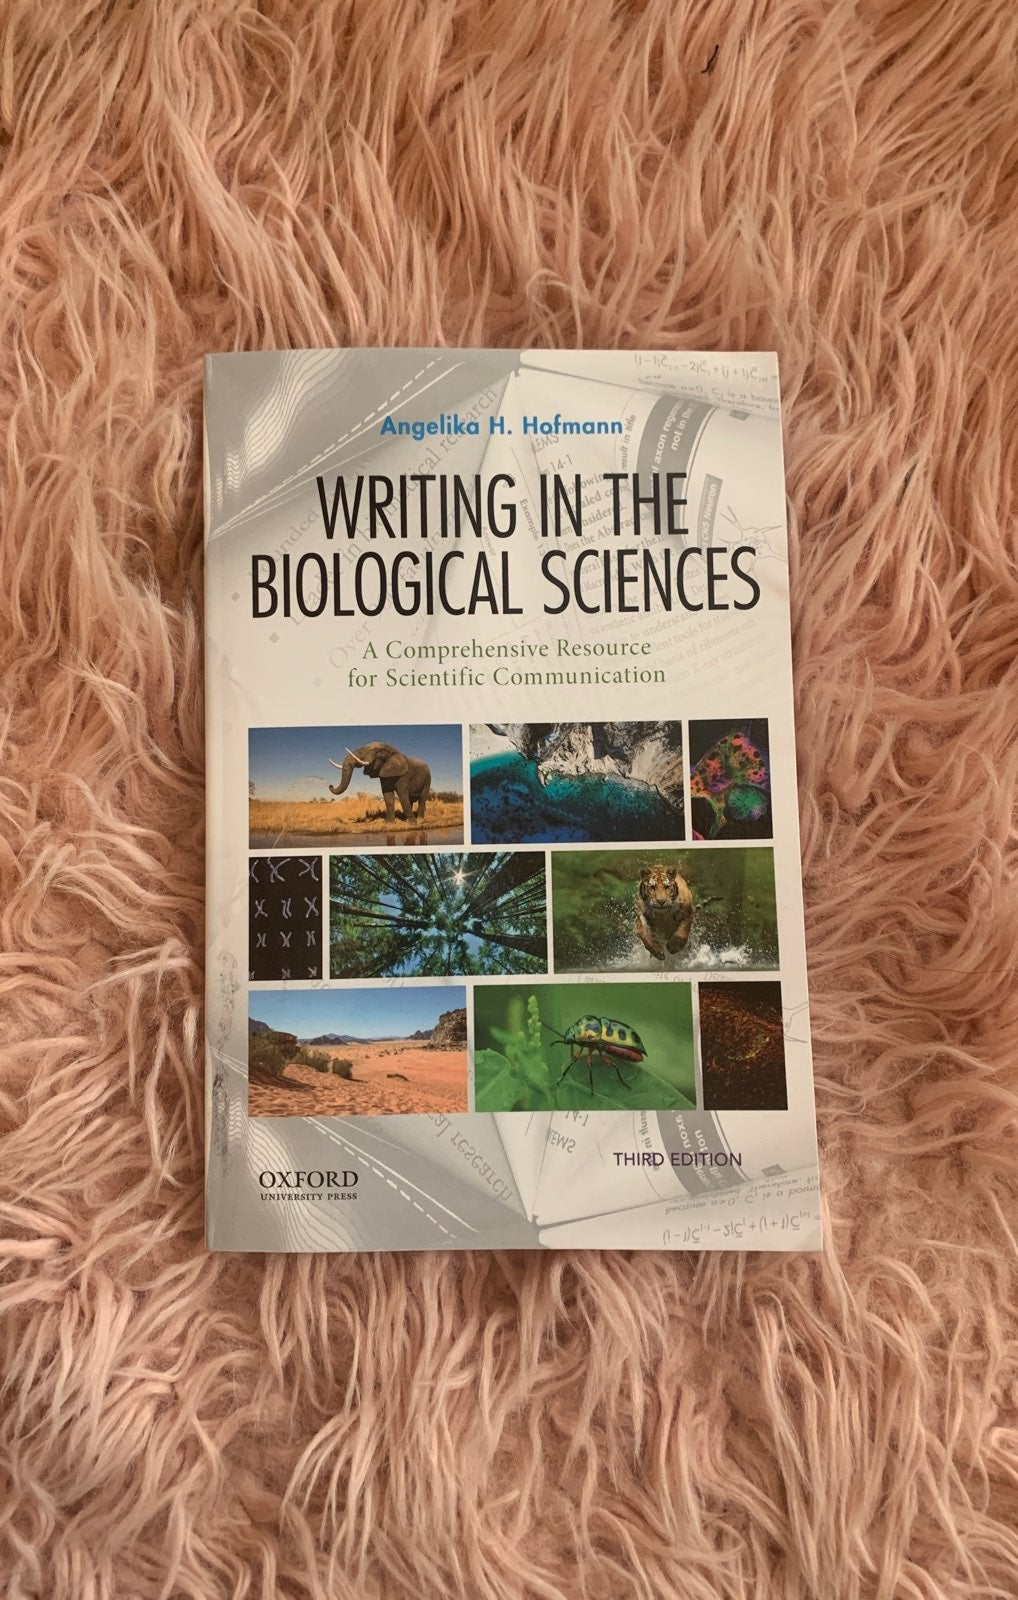 Writing in the Biological Sciences